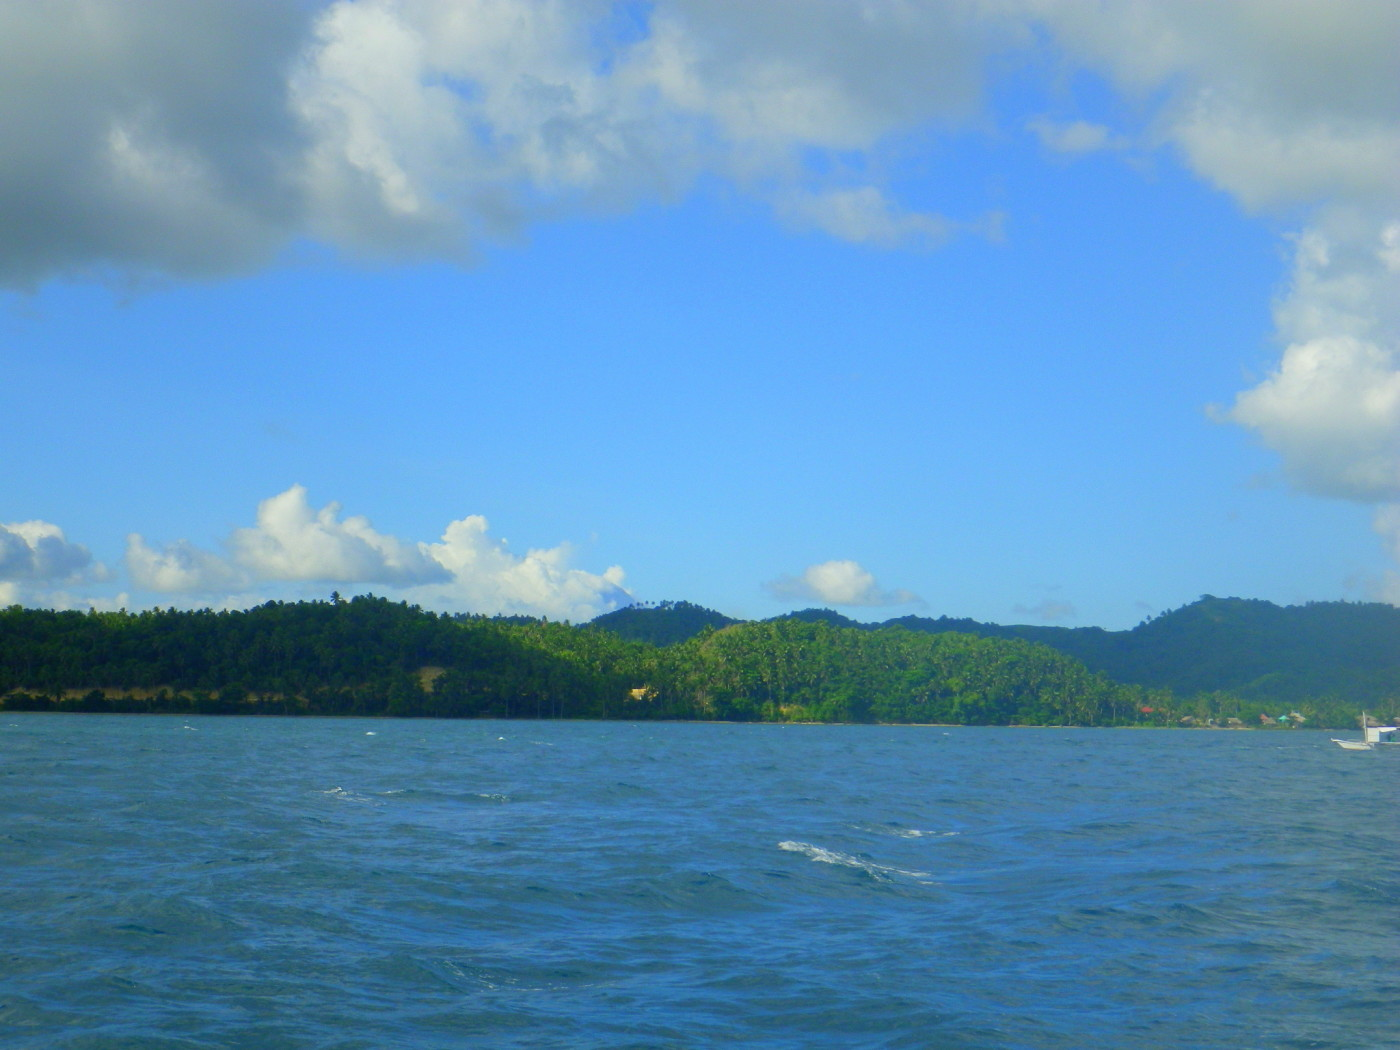 Donsol's horizon with no signs of whale sharks